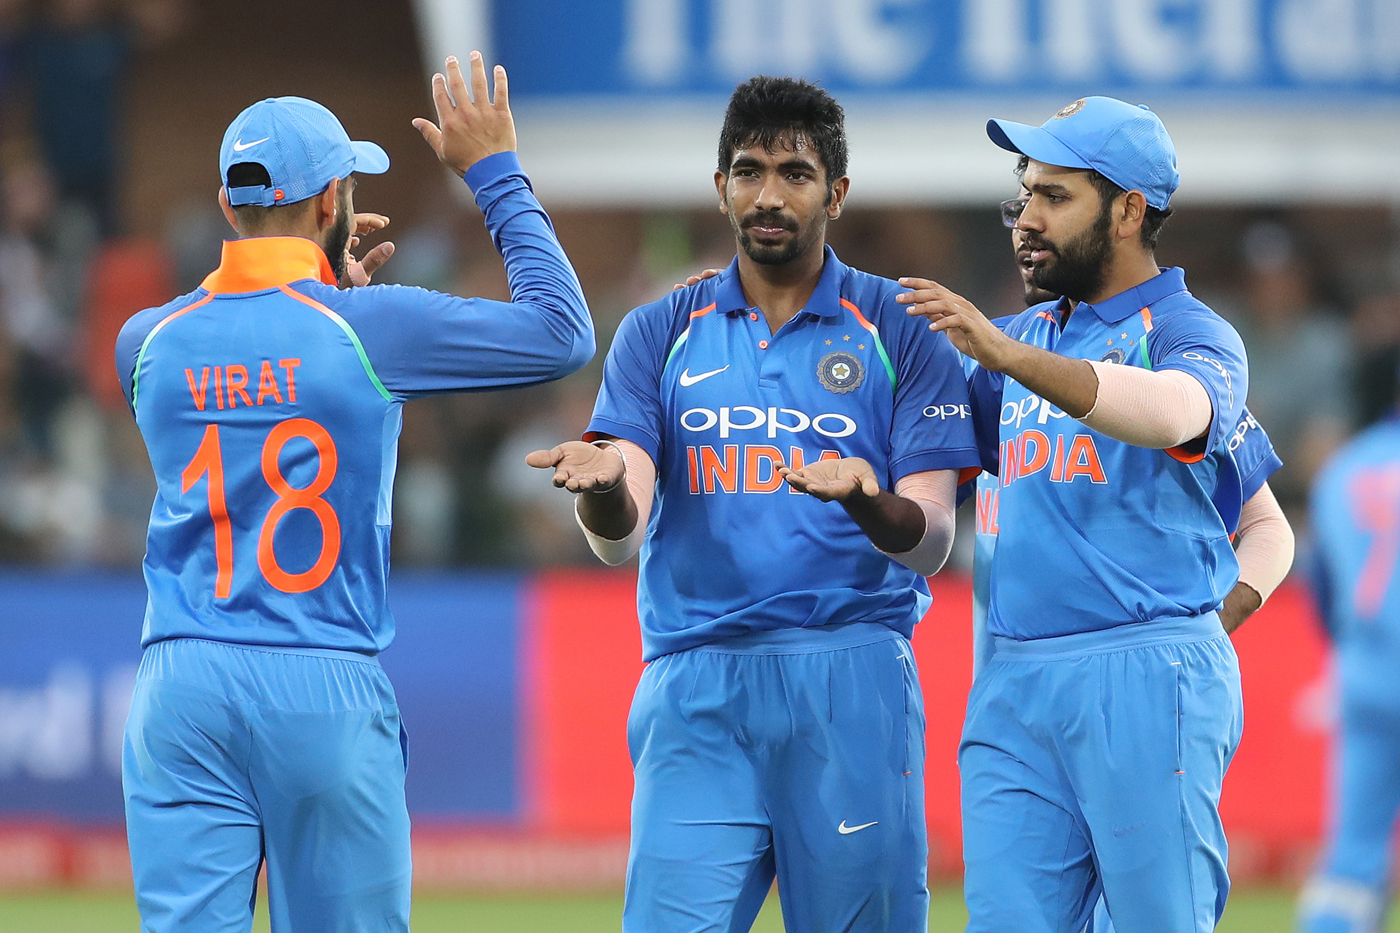 Australia vs India 2018/19: Ahead Of First ODI, Aaron Finch Points Out India's Weakness 2